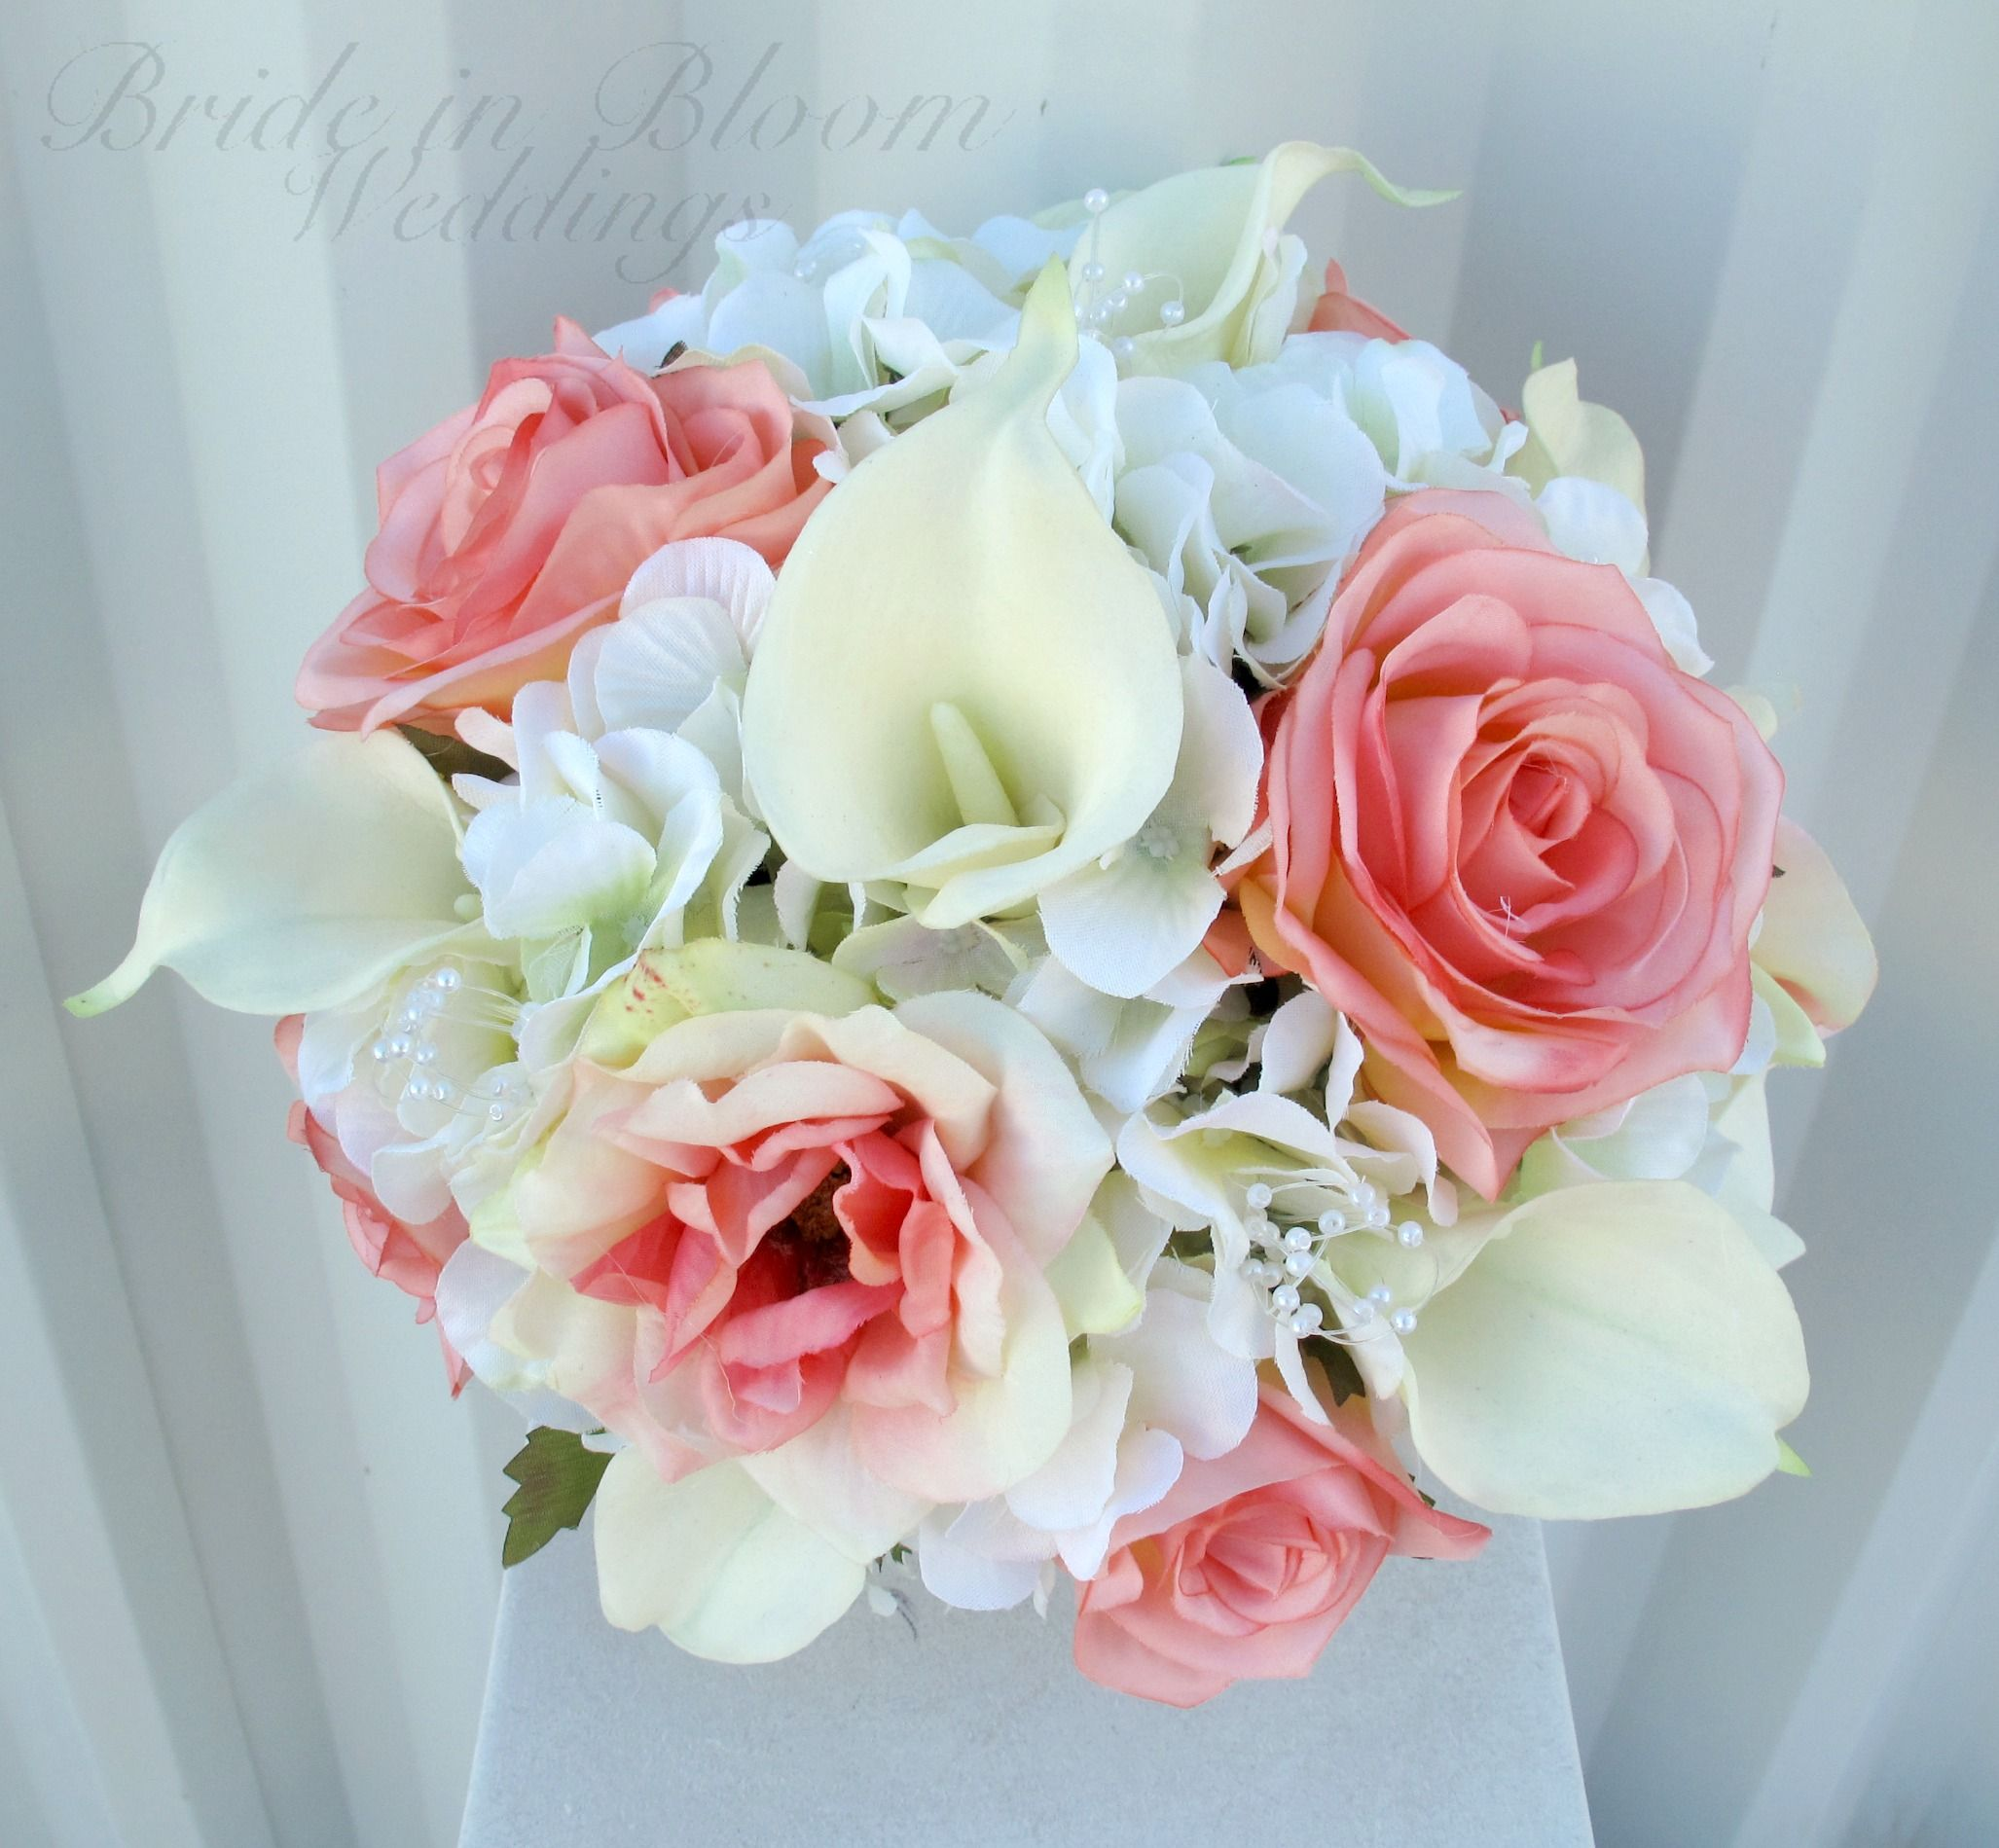 Coral rose calla lily wedding bouquet (With images